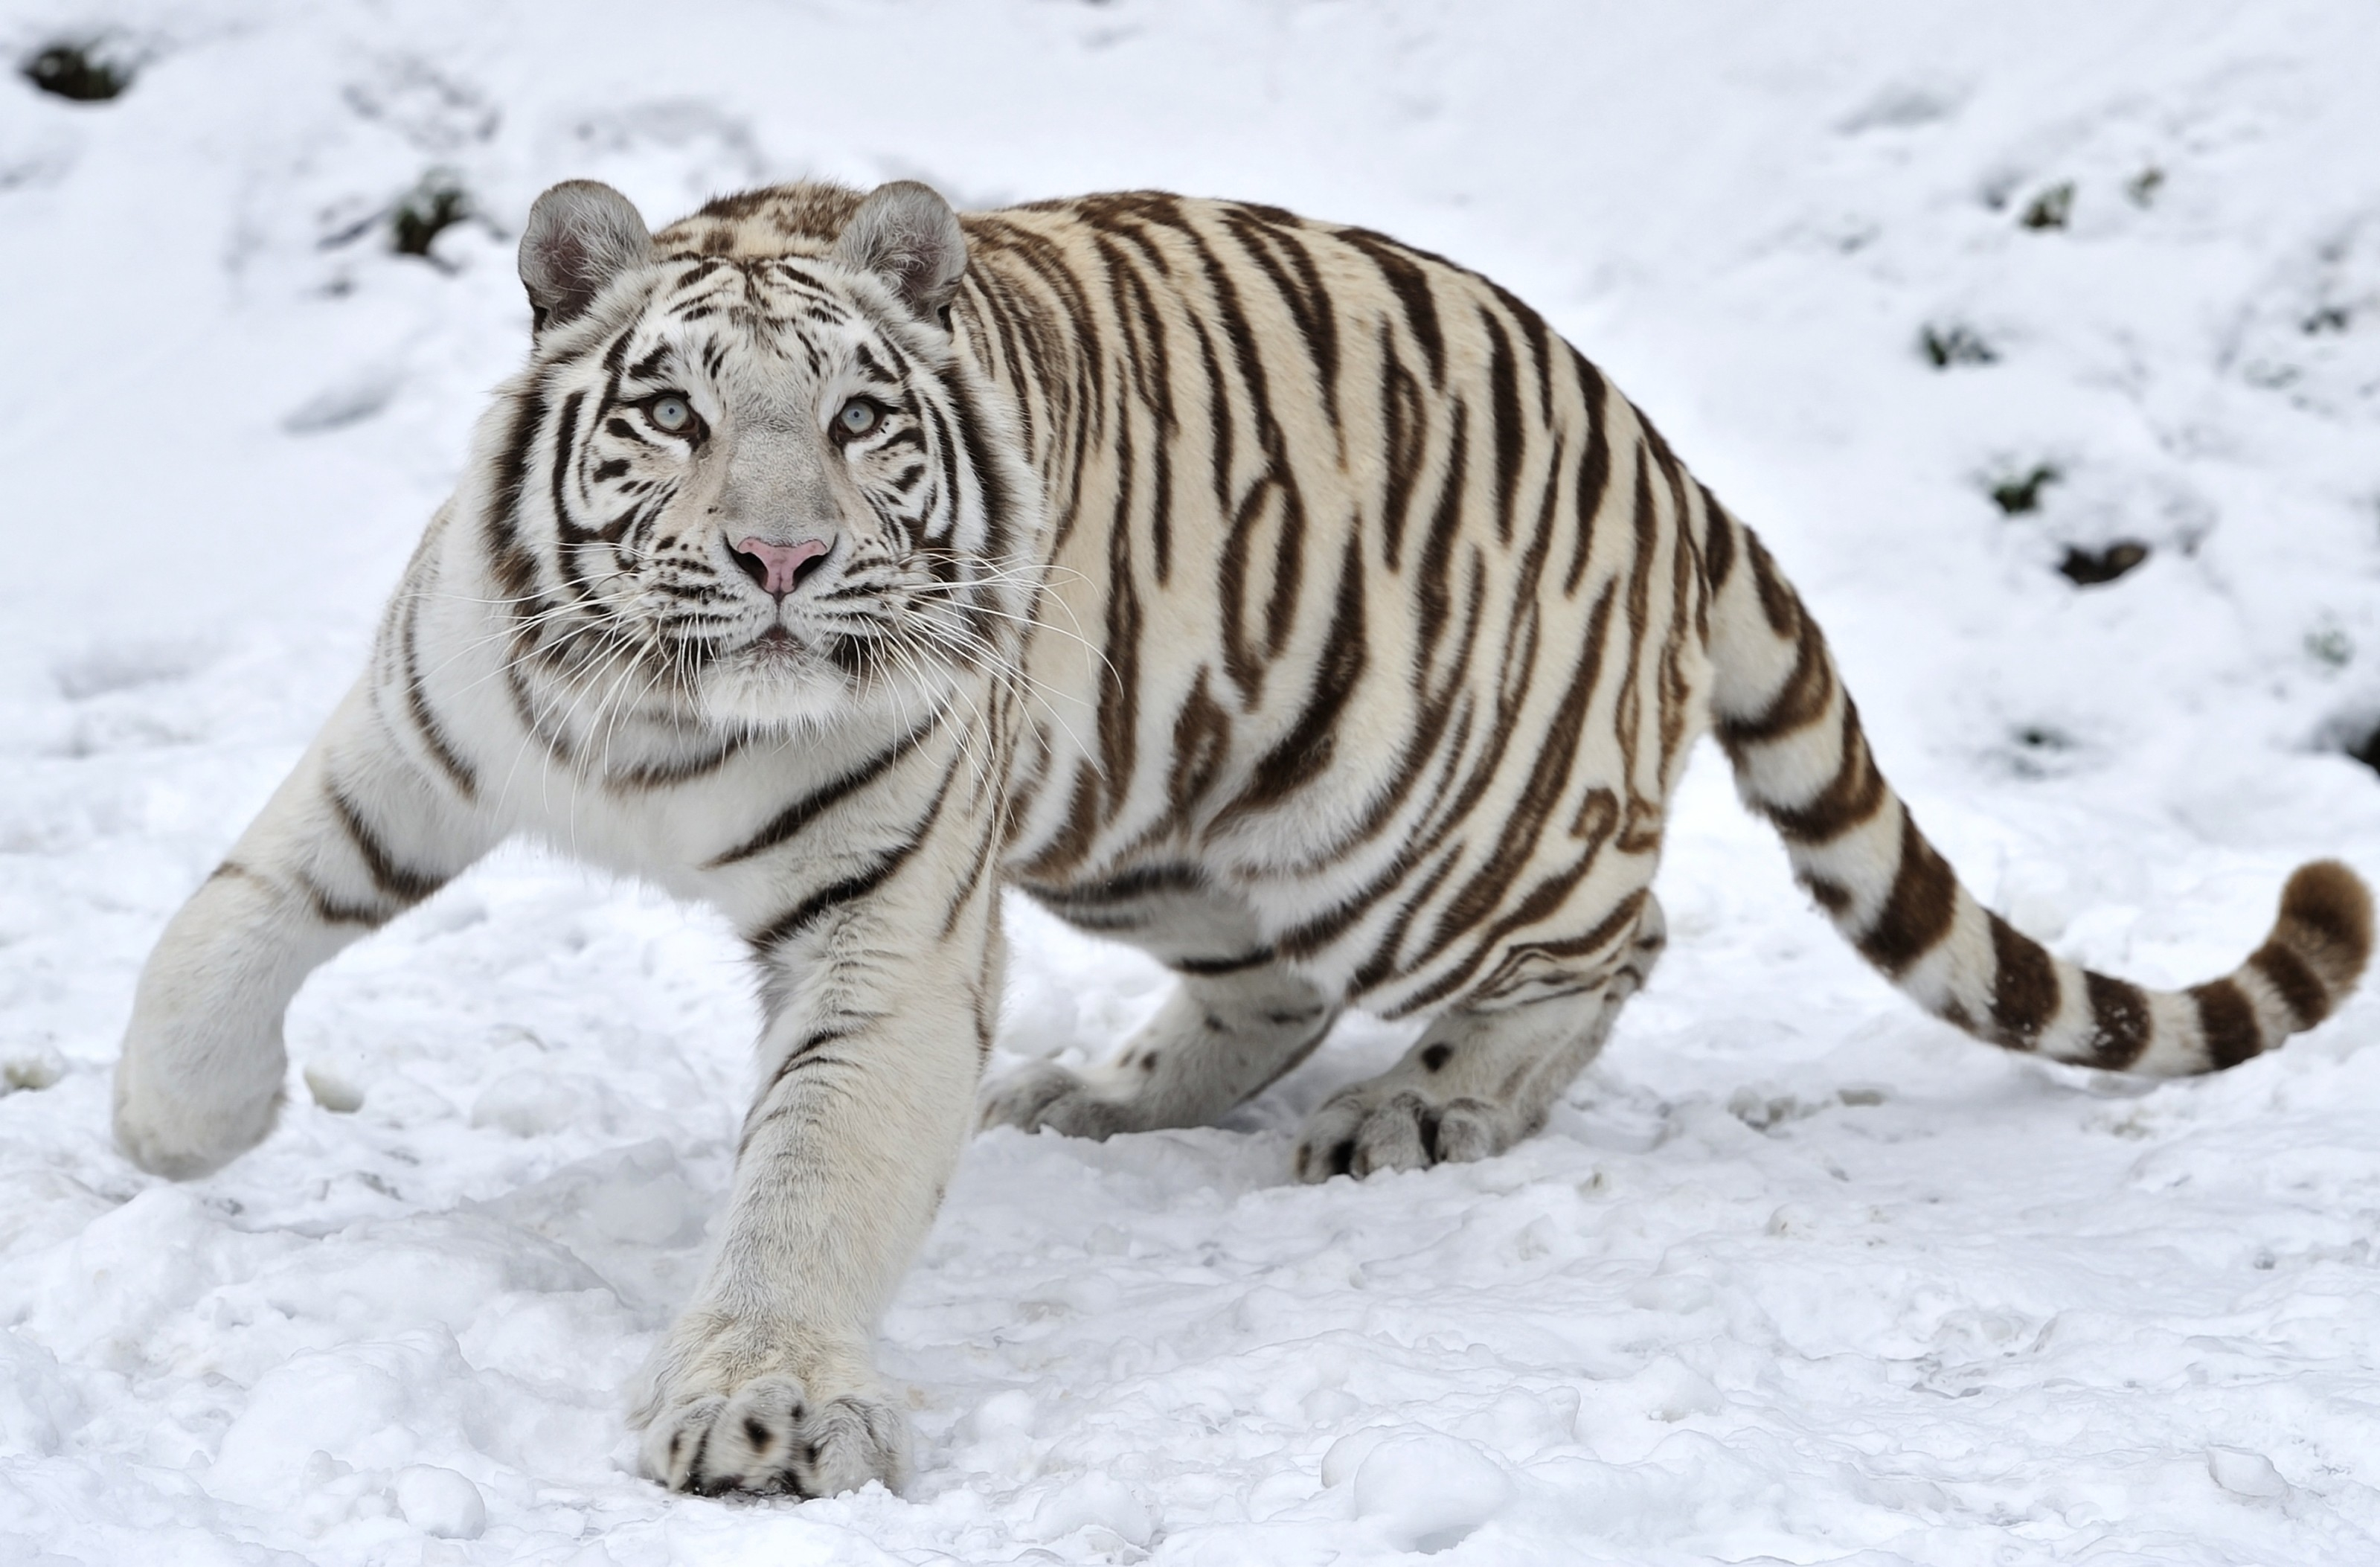 86875 download wallpaper Animals, Winter, Snow, Tiger, Albino screensavers and pictures for free